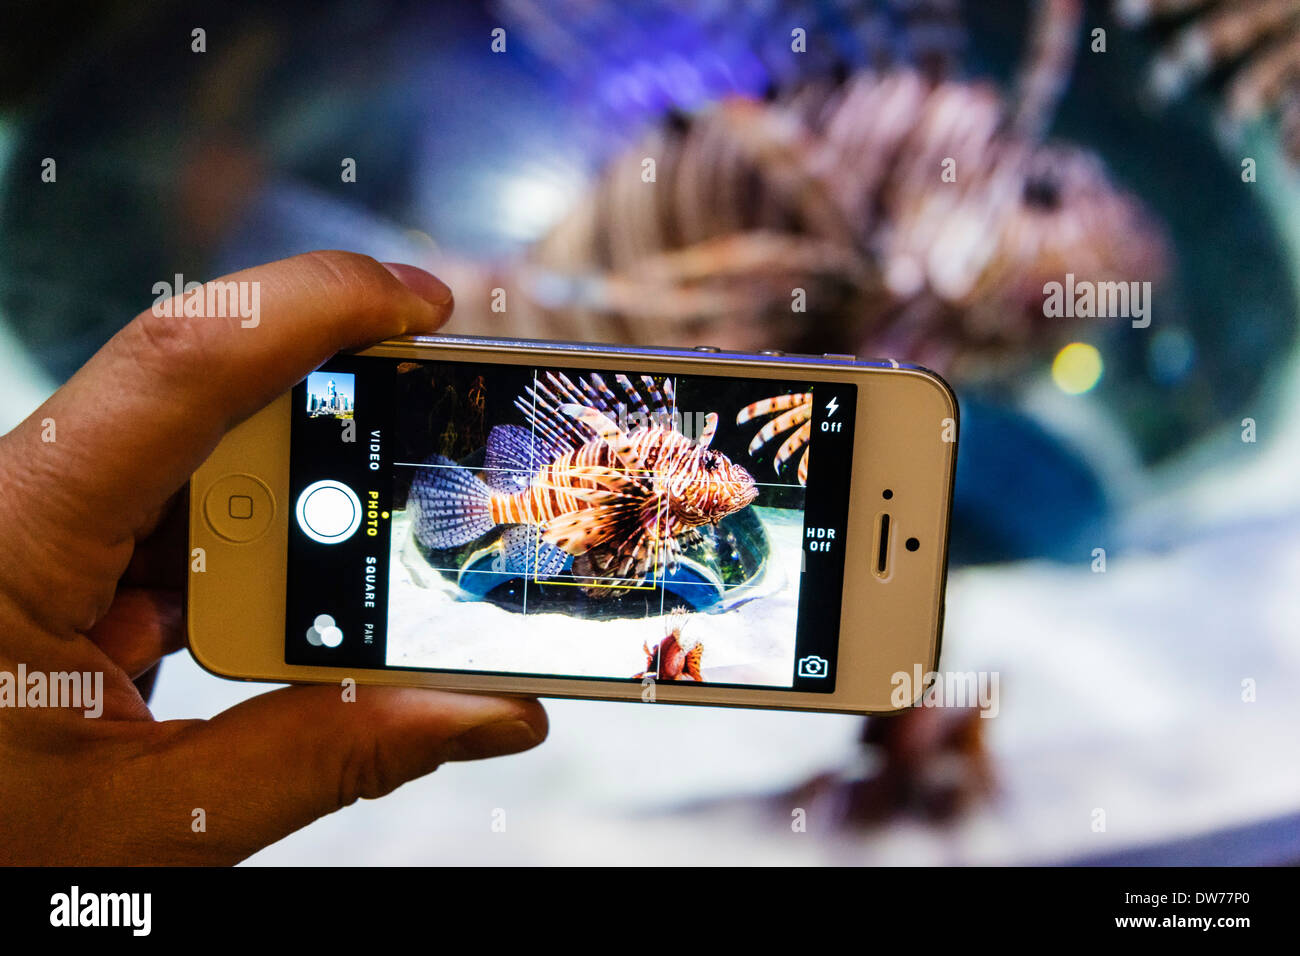 Photographing a Lionfish with camera phone at Underwater Zoo aquarium at Dubai Mall in United Arab Emirates Stock Photo